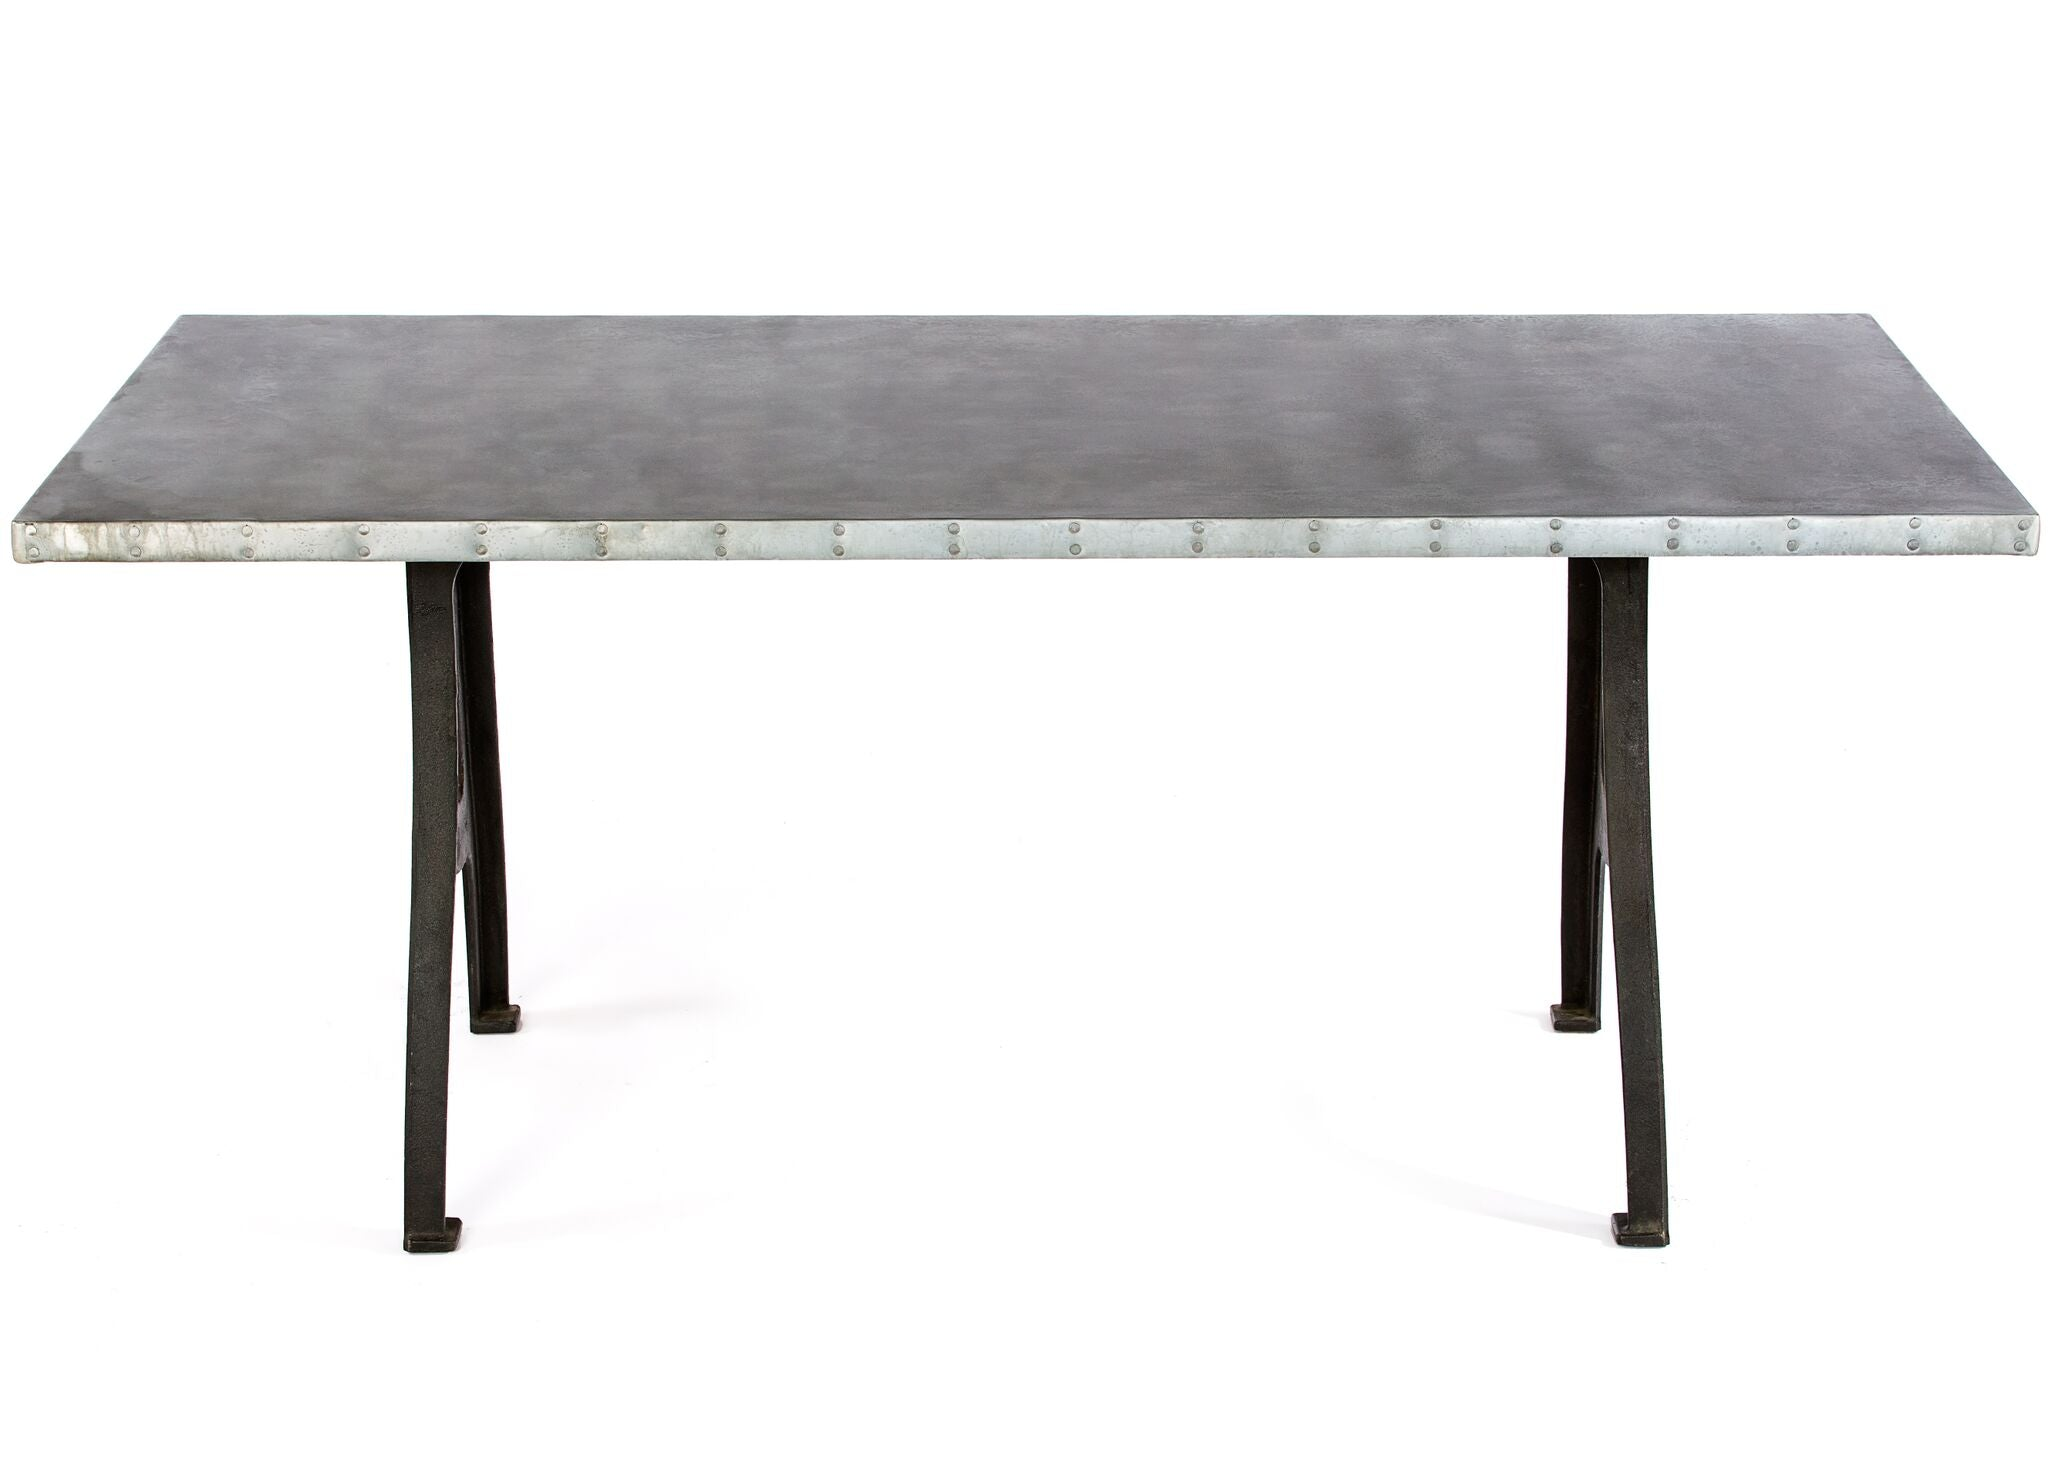 Zinc Rectangular Table | Williamsburg Table | CLASSIC | Black | CUSTOM SIZE L 60 W 37 H 30 |